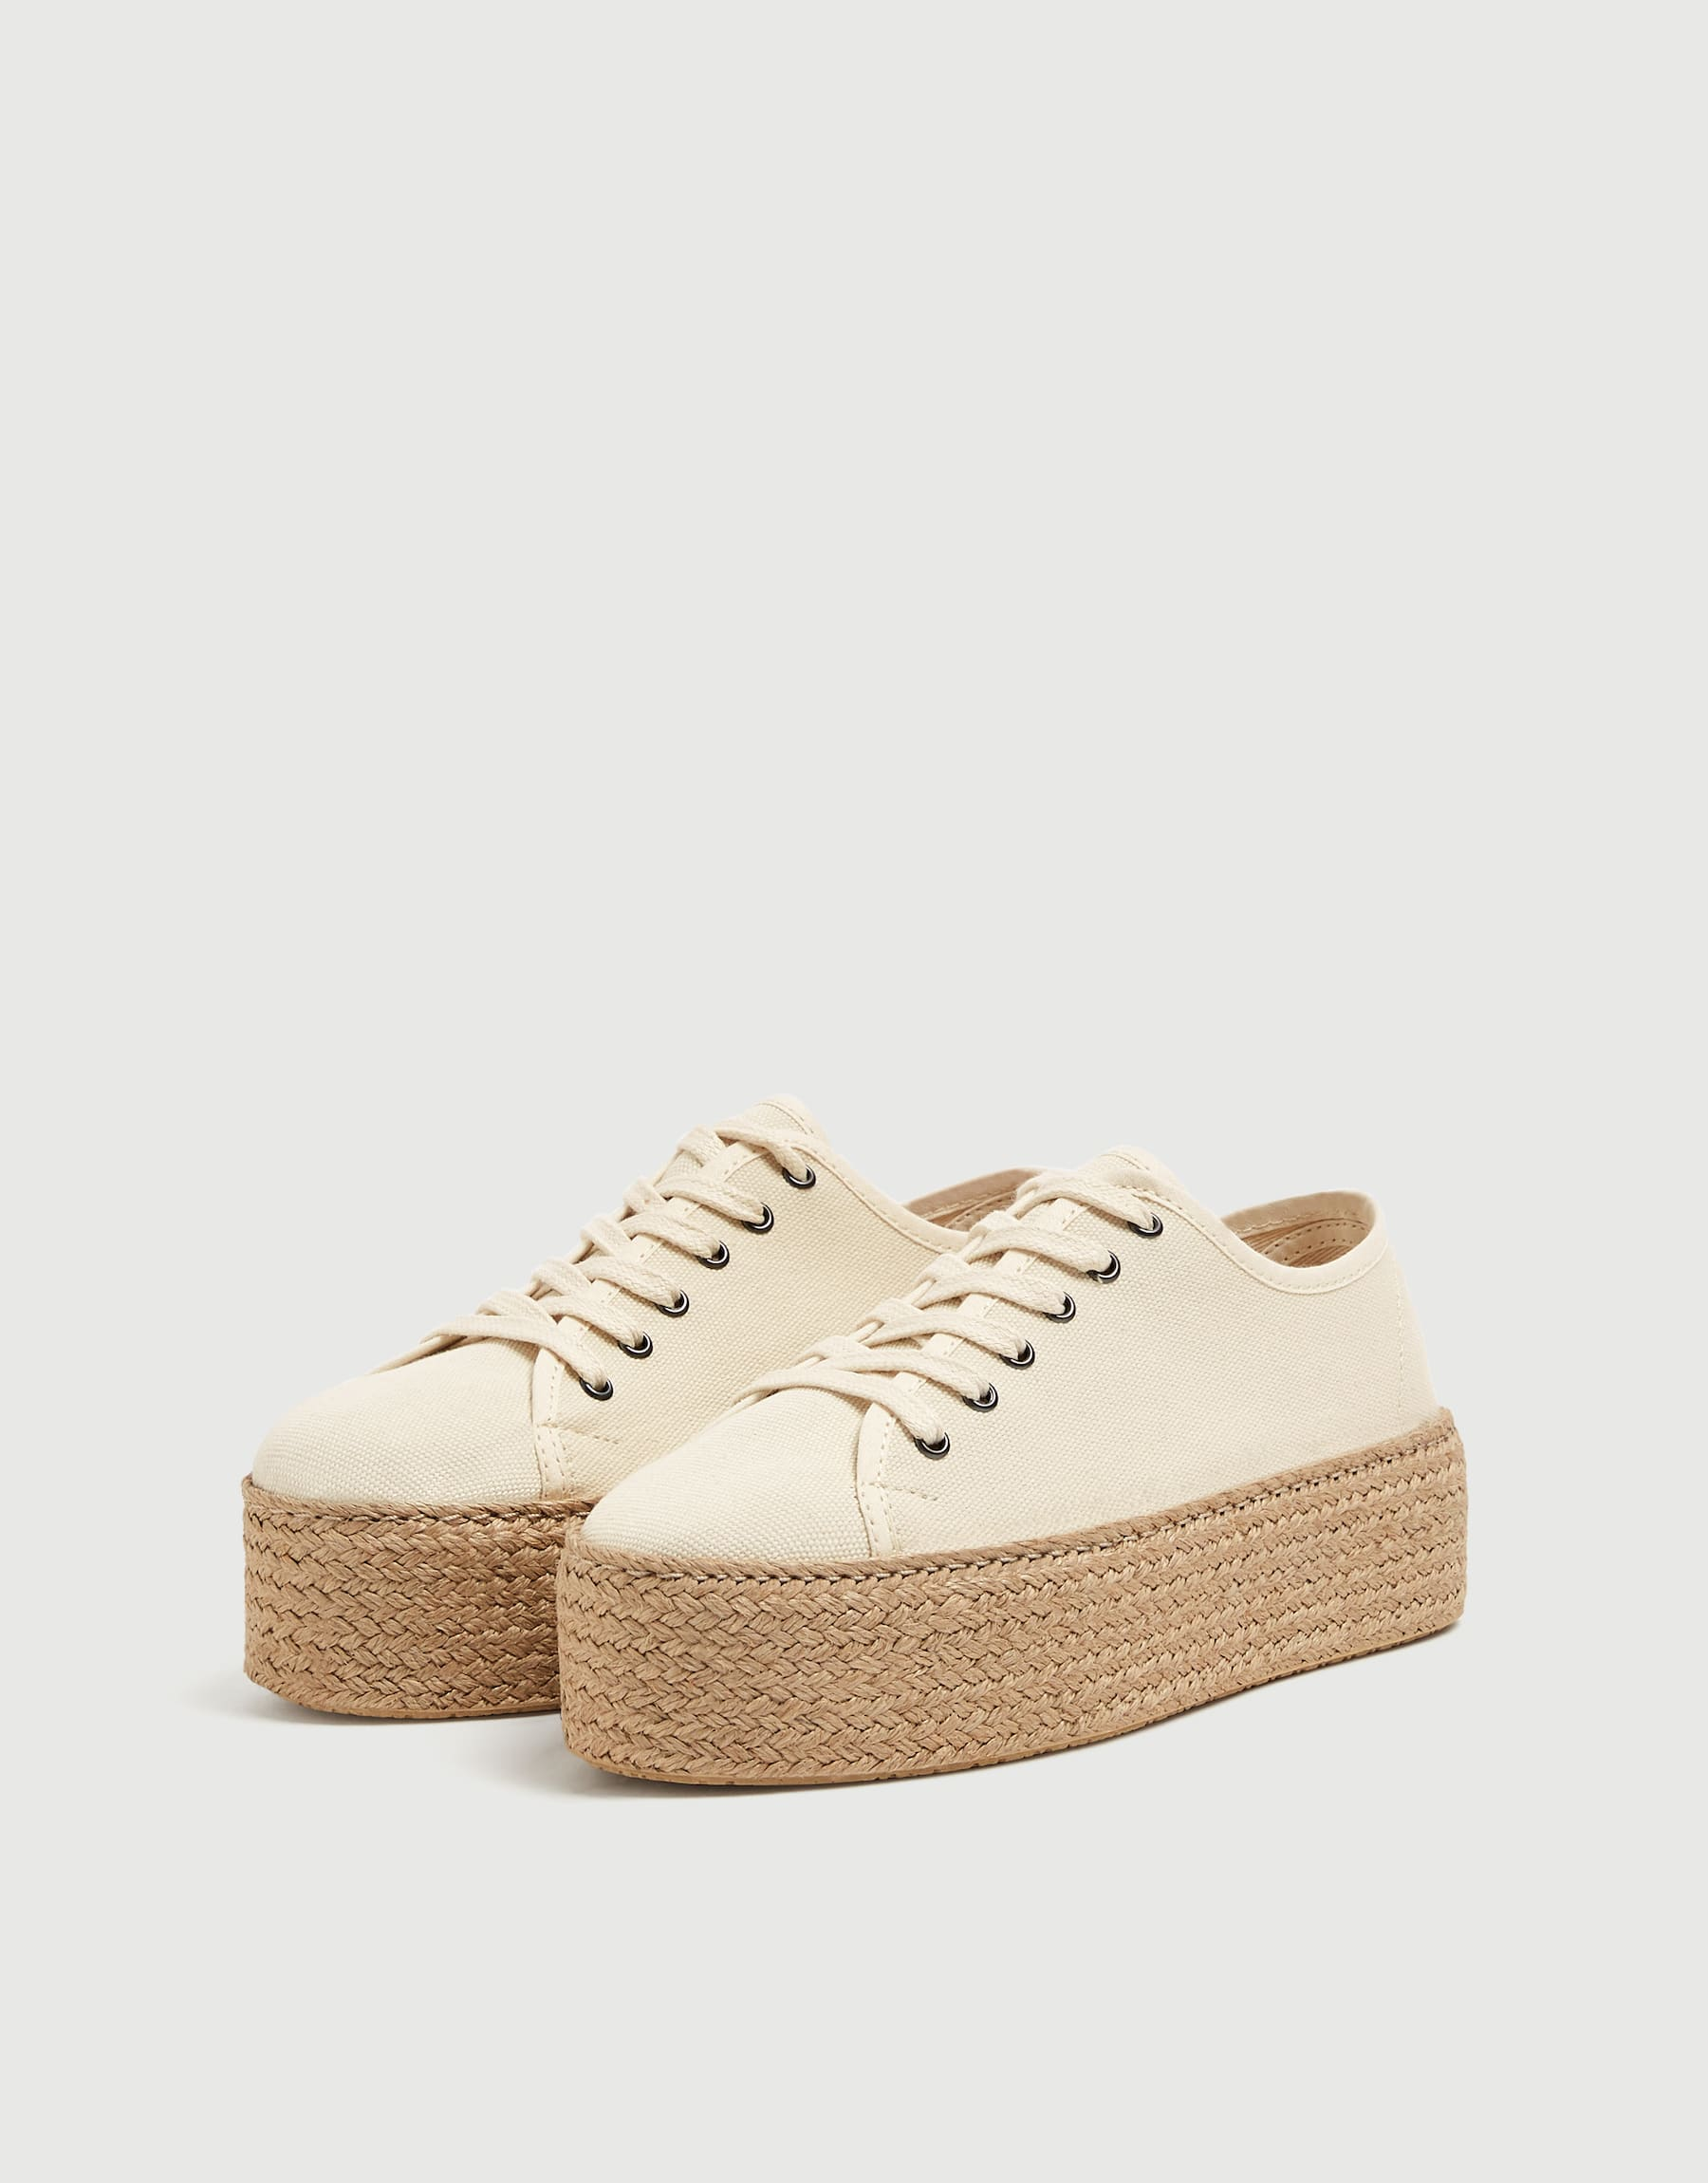 Sadie Sink Join Life Chunky Jute Sole Trainers, $69.90